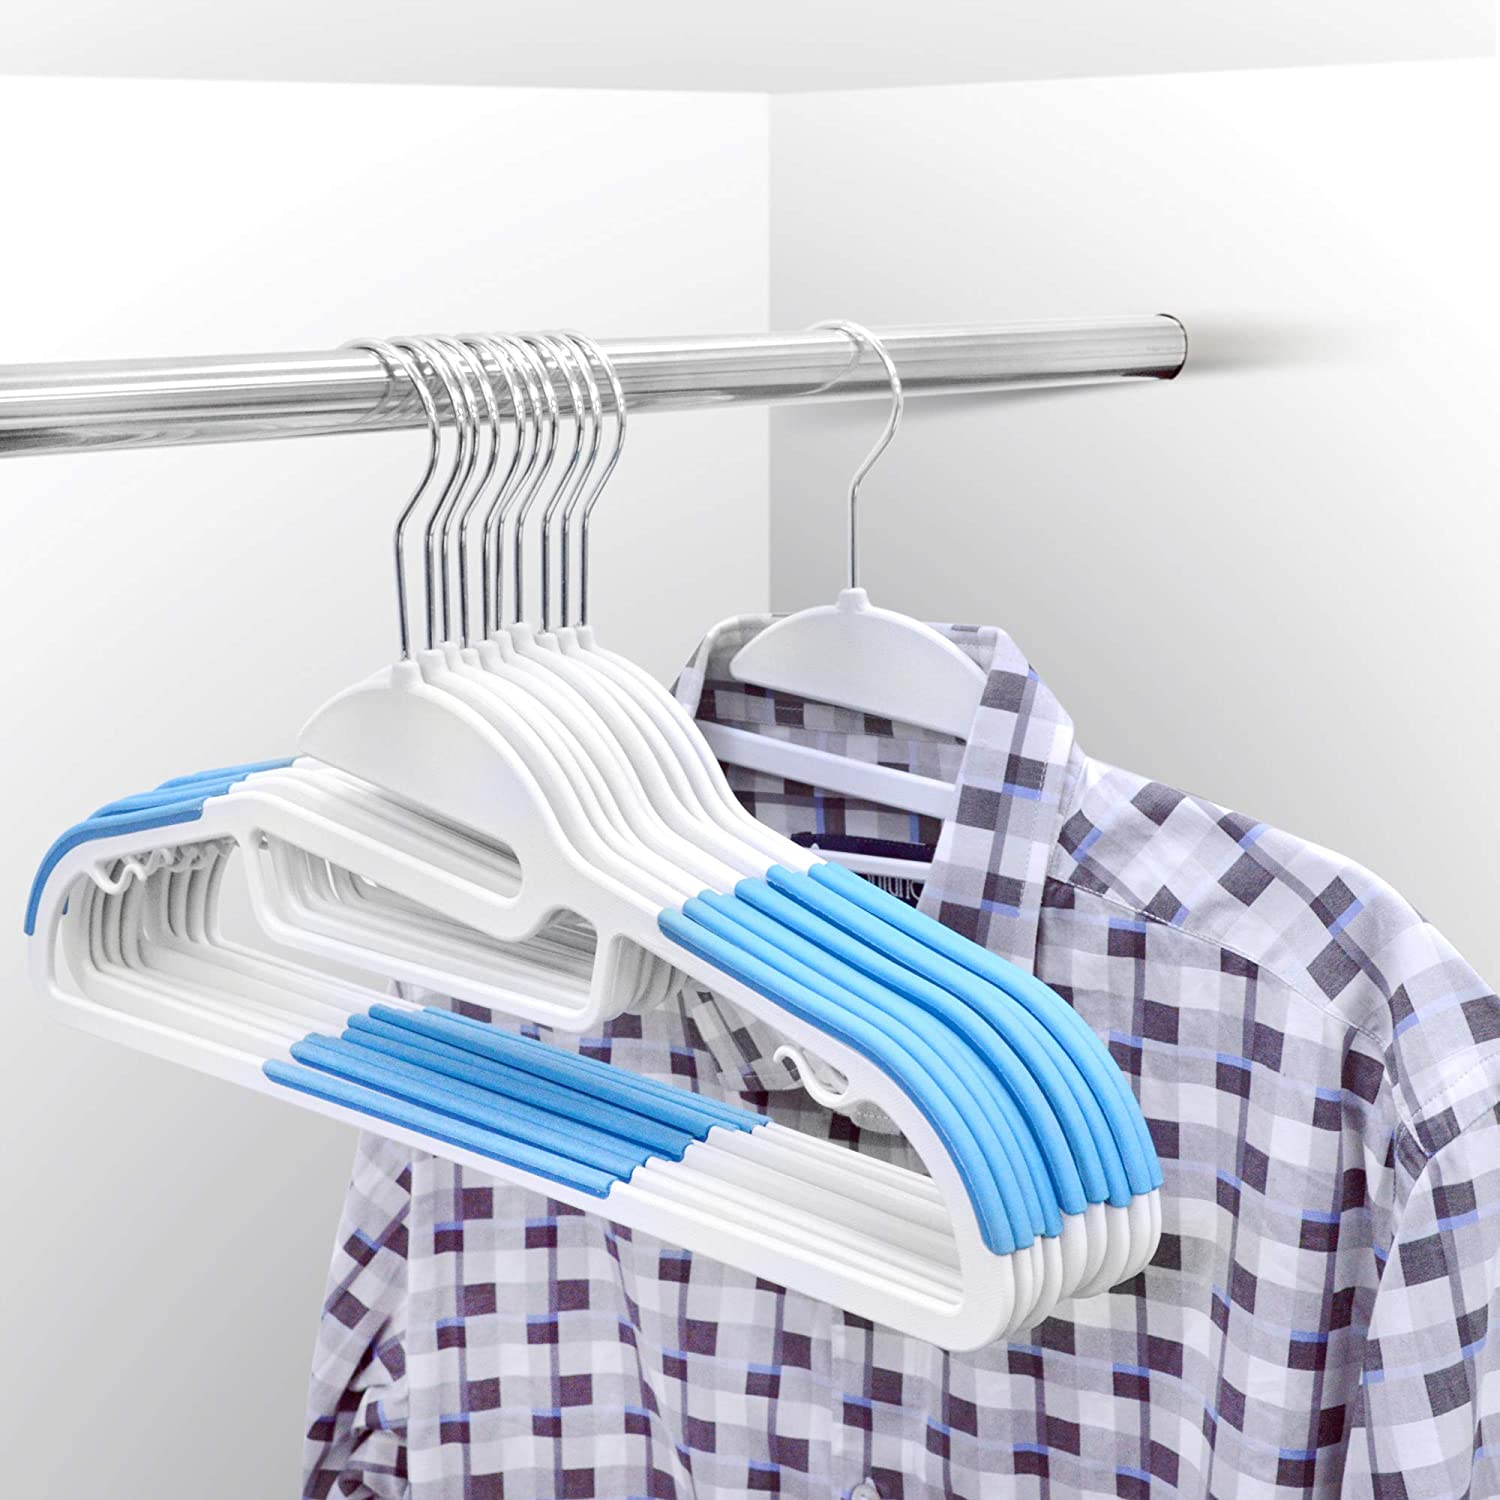 20 X Hangers Space Saving Non-Slip 360/º Swivel Hook Blue Coat Hangers Heavy Duty with S-shaped Opening Premium Quality Suits Clothes Hangers